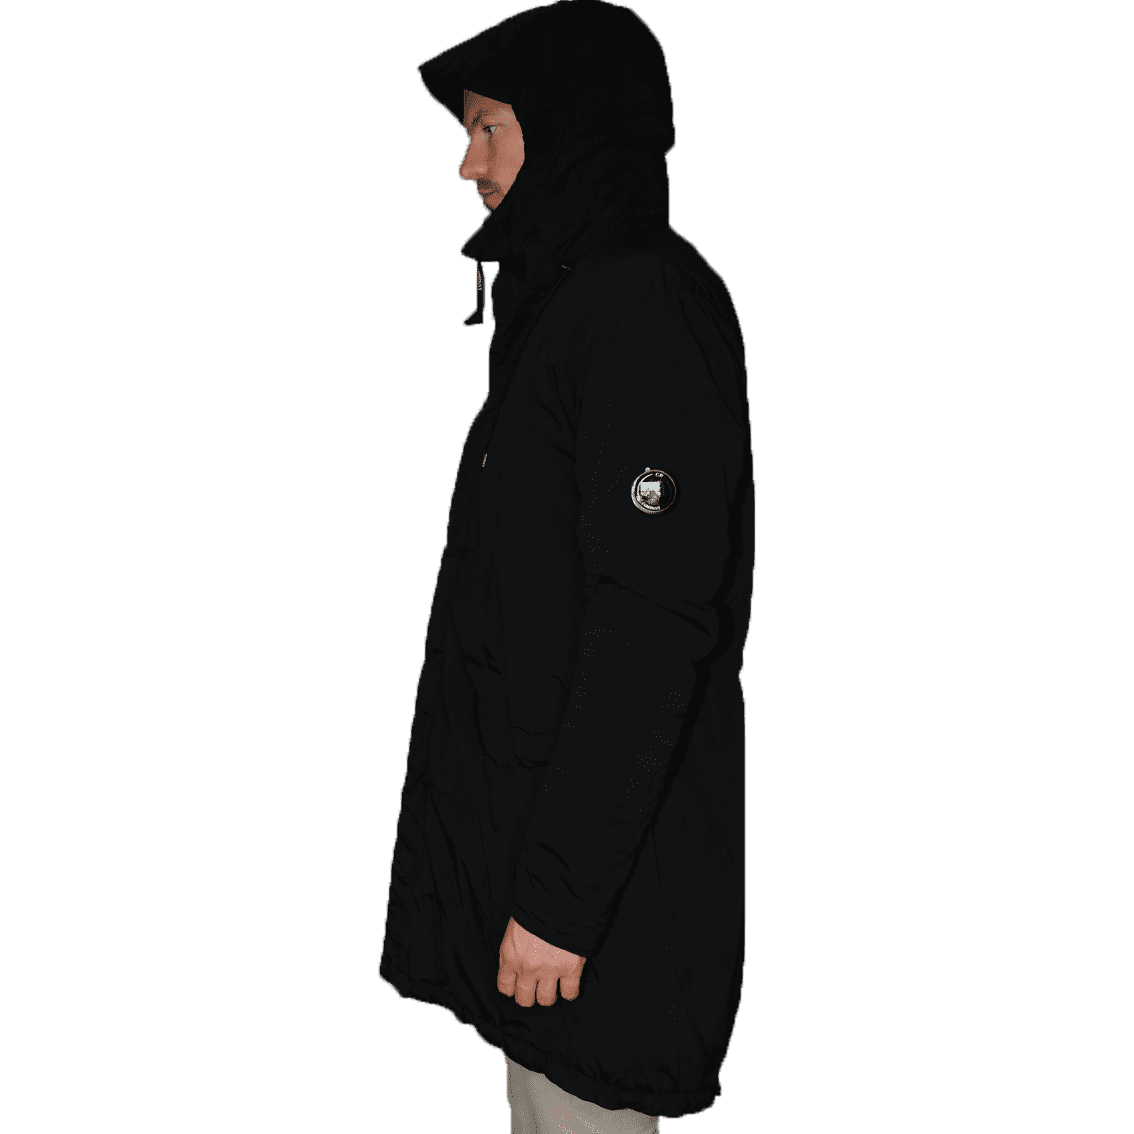 Cabinero Stiles Herrenmode Onlineshop C.P.Company Parka in Dunkelblau #03CMOW005A-001020G AW17-18 1